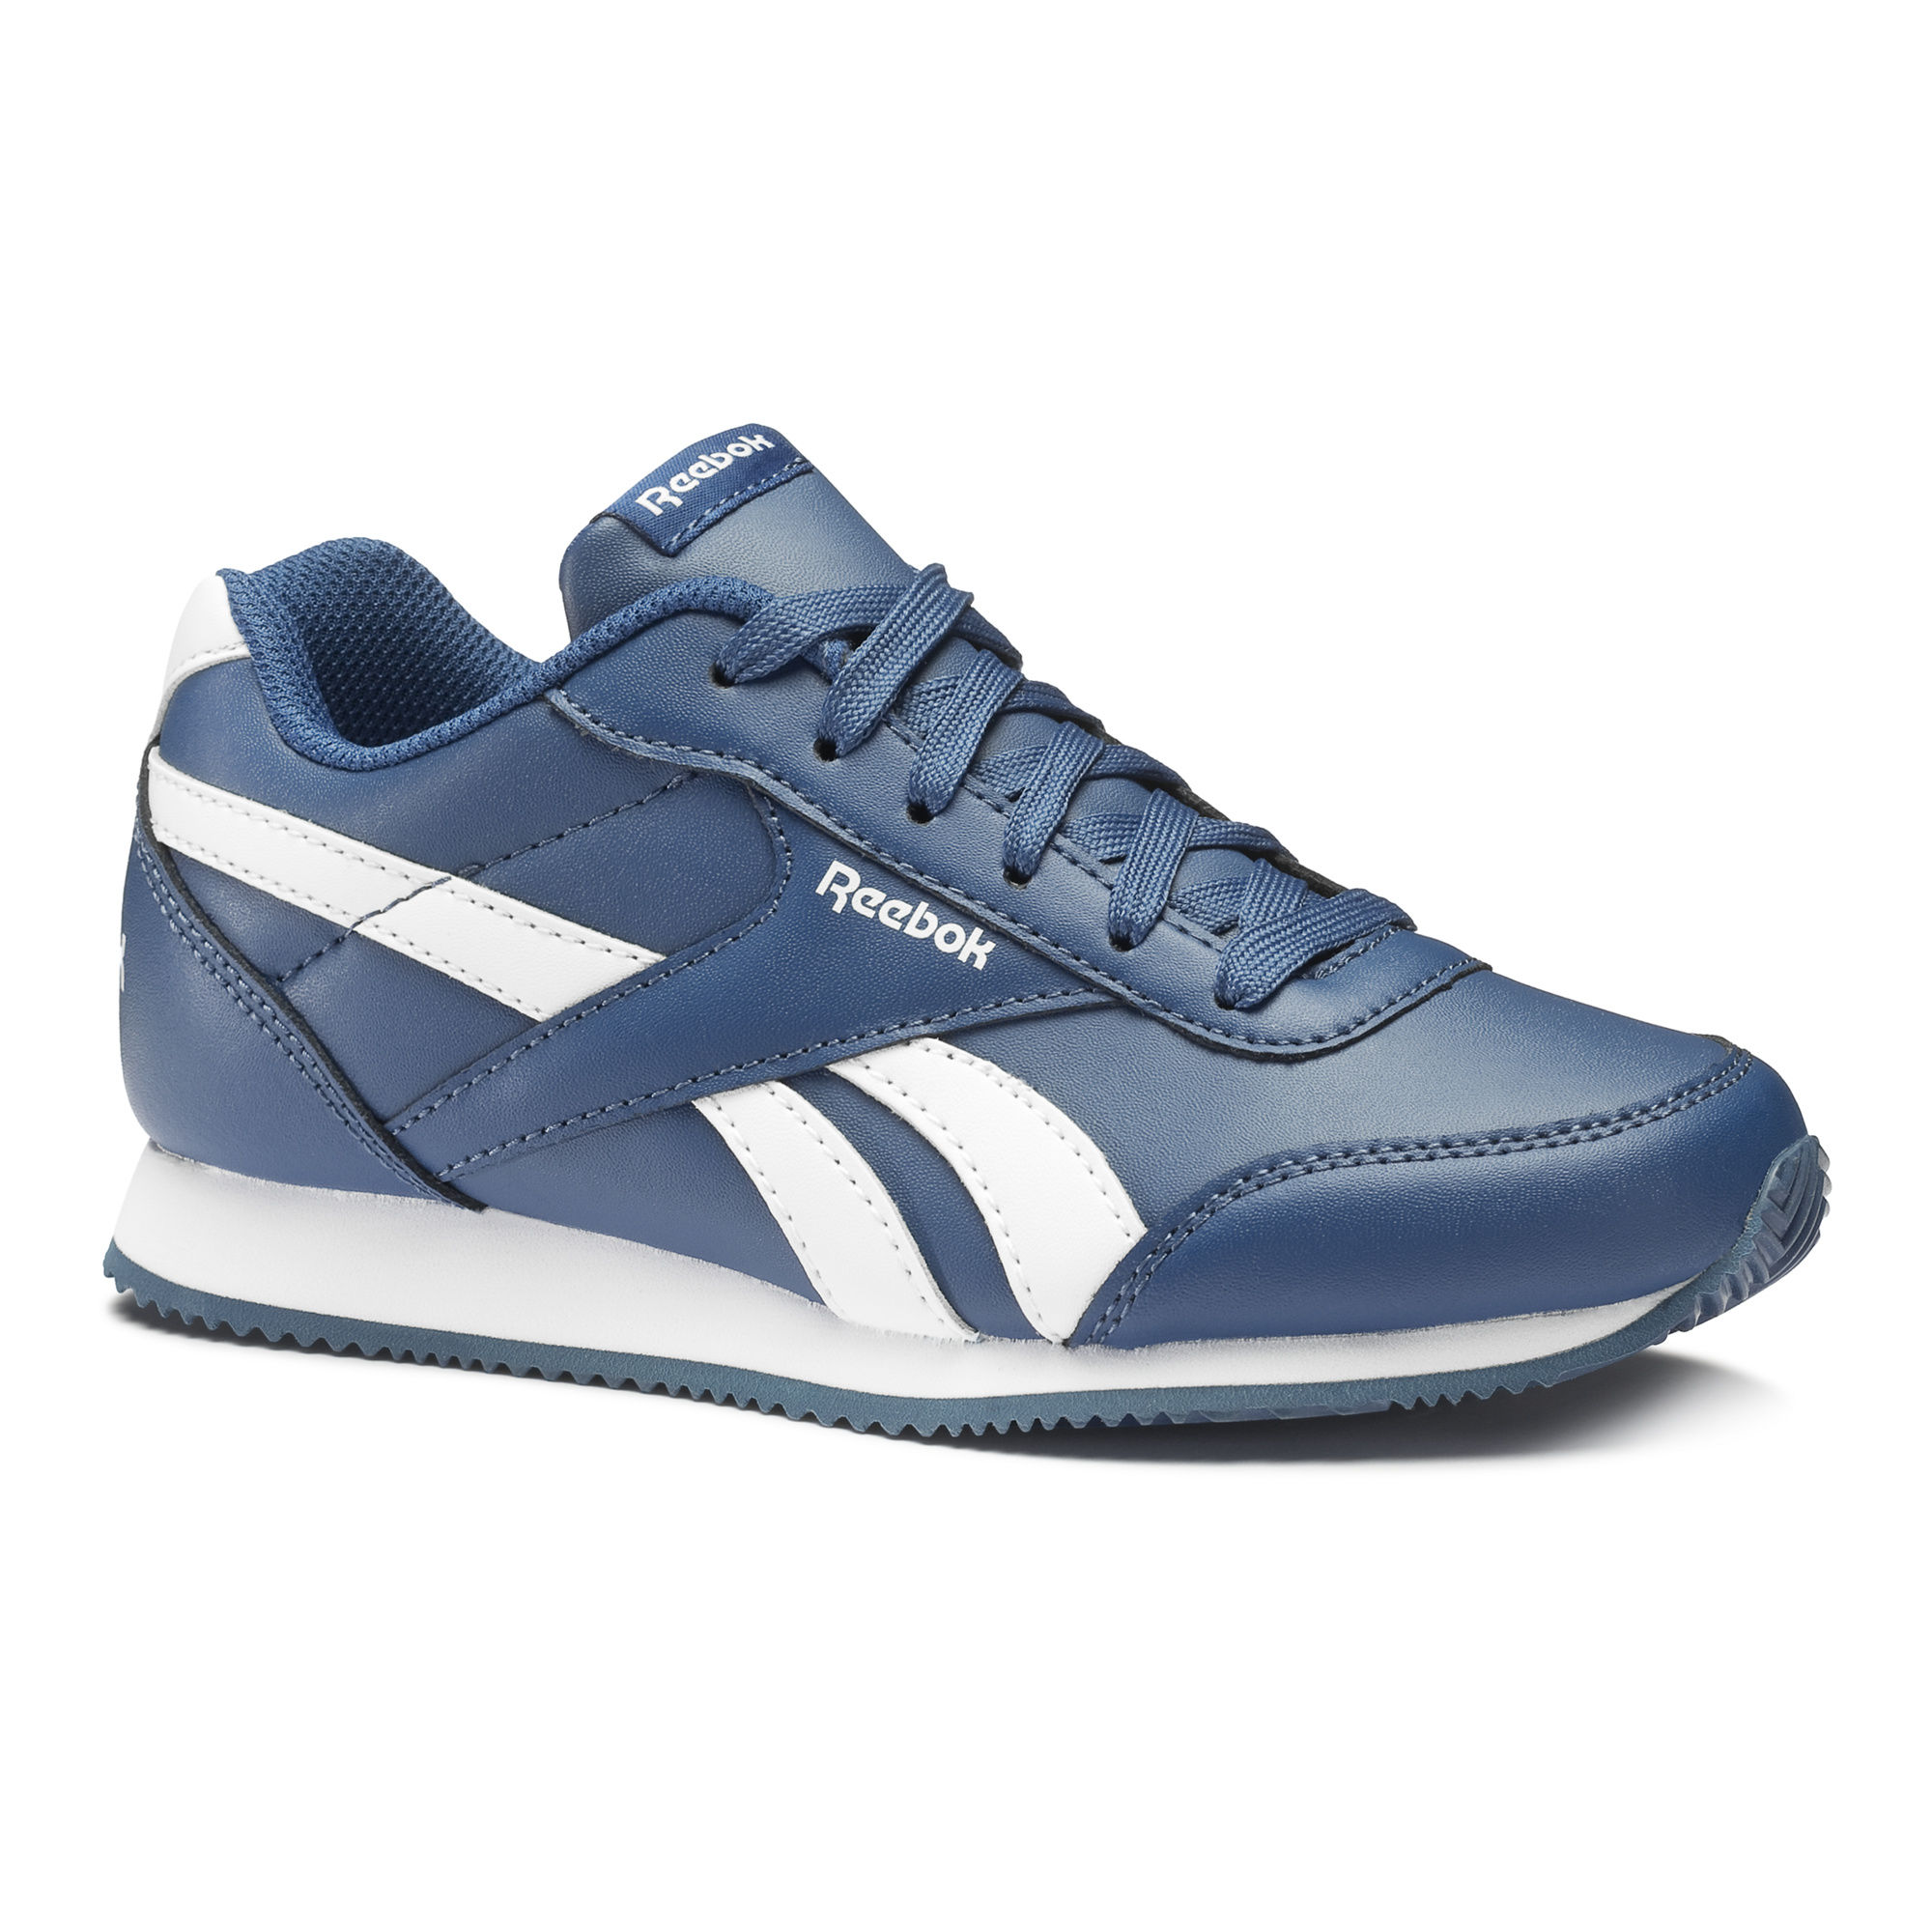 6a5965fcb25 Girls Sneakers Sale Online - Reebok Royal Classic Jogger 2.0 Blue White